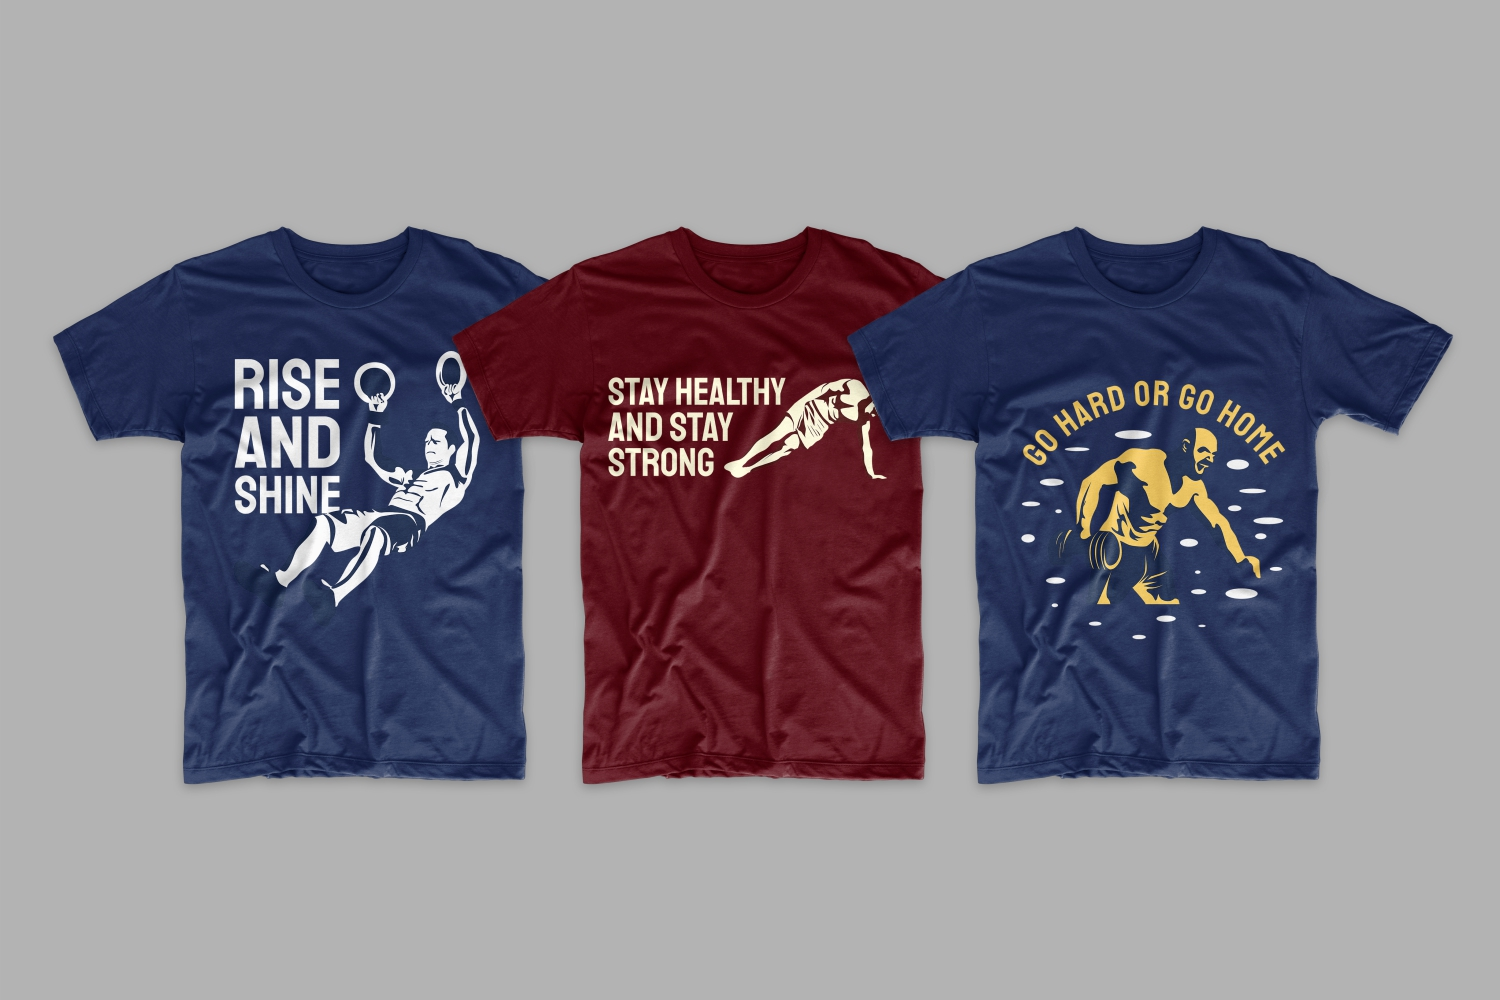 Three T-shirts: two blue and burgundy with male athletes and short motivating phrases.